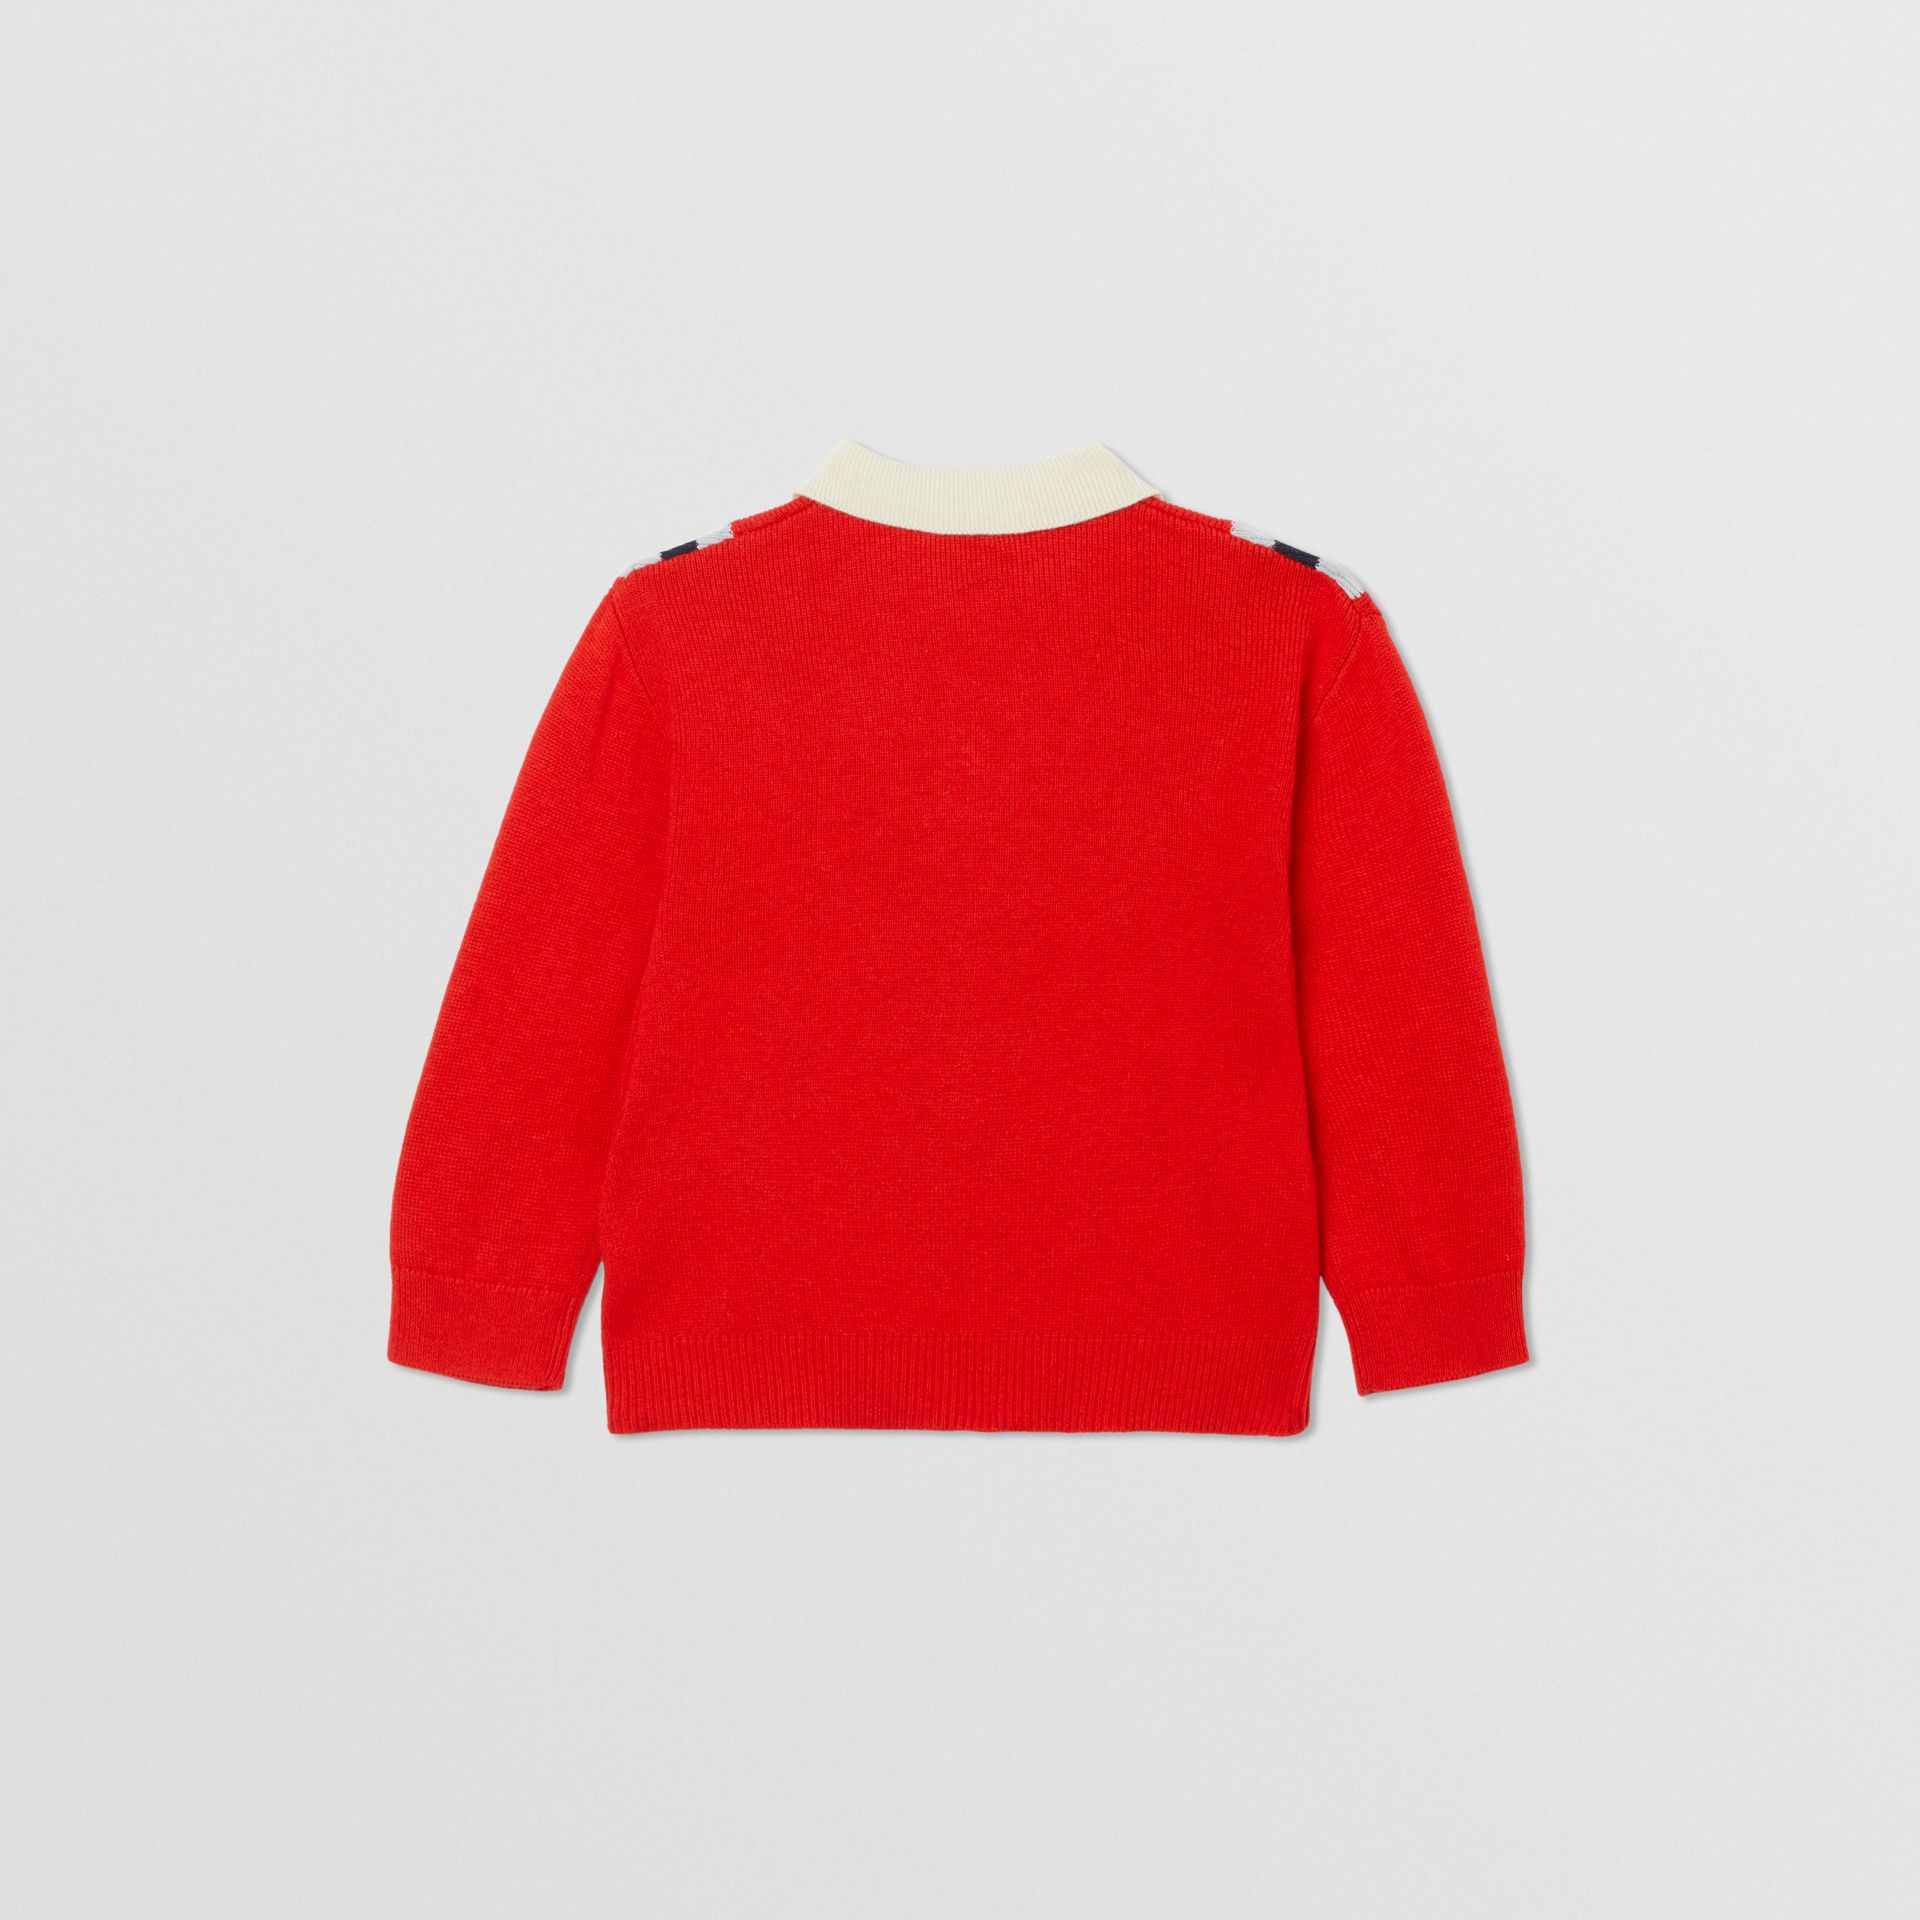 Long-sleeve Knit Cashmere Cotton Polo Shirt in Bright Red - Children | Burberry United Kingdom - gallery image 2